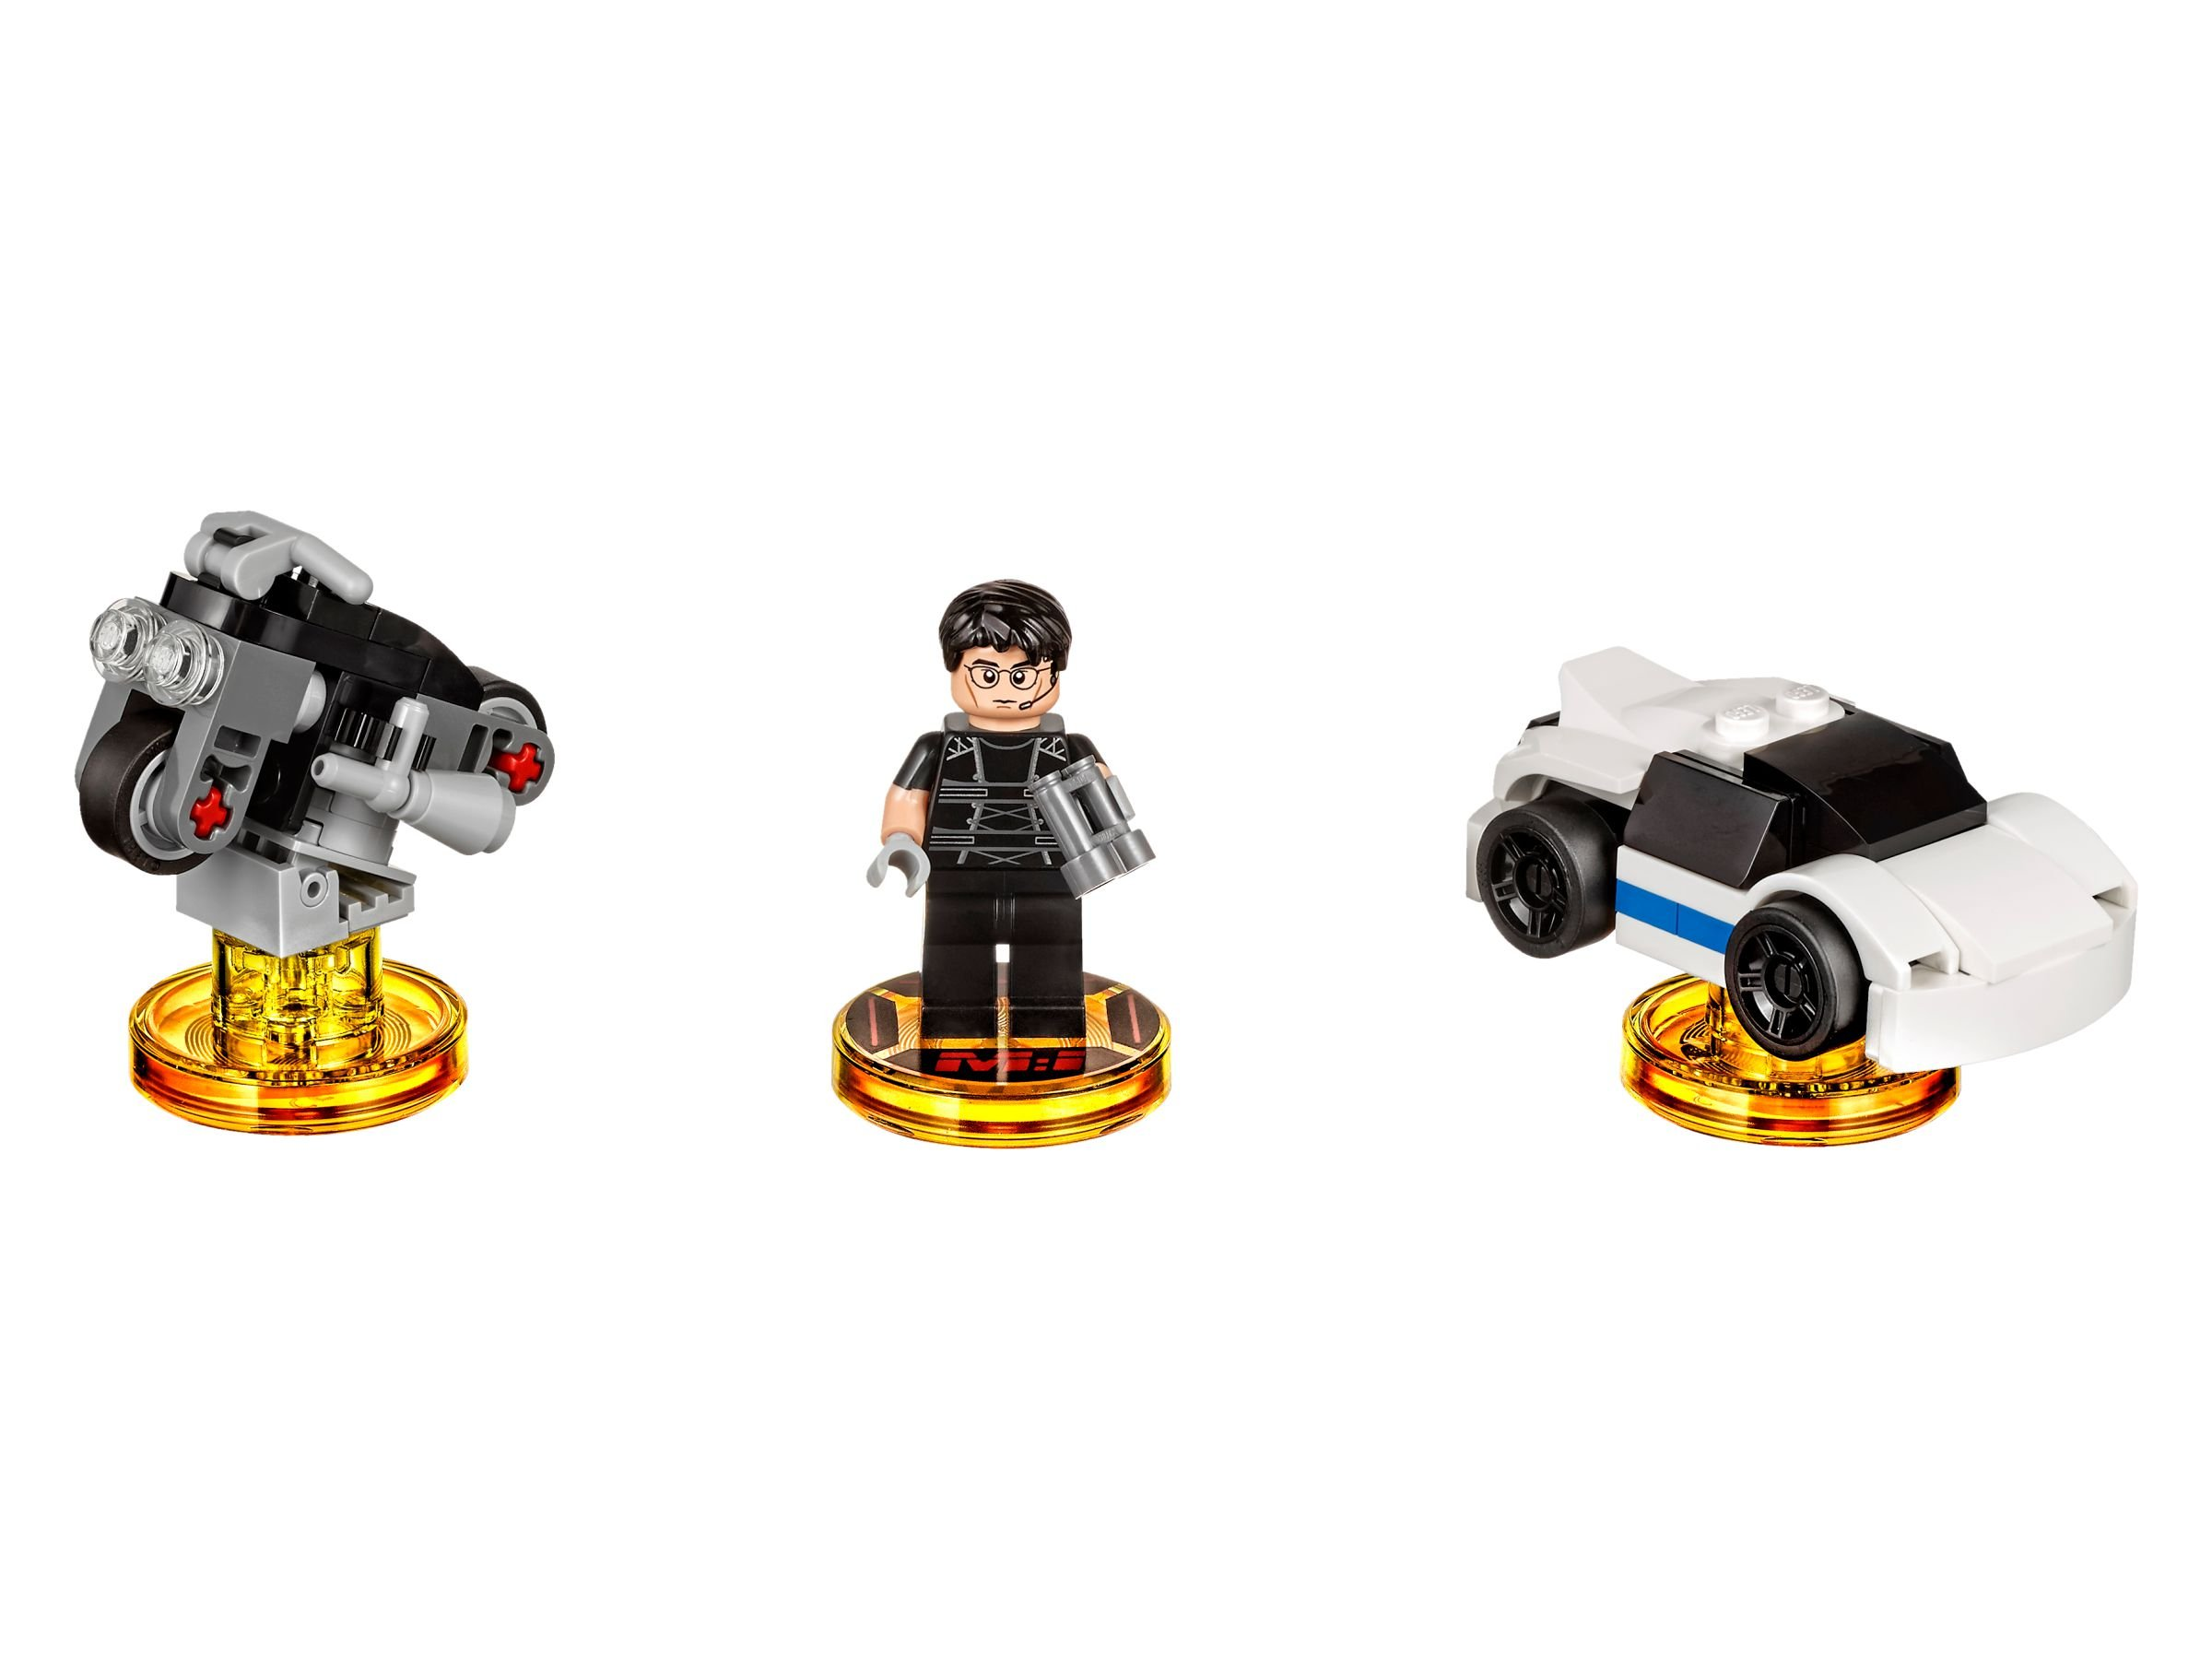 LEGO Dimensions 71248 Level Pack Mission Impossible LEGO_71248.jpg